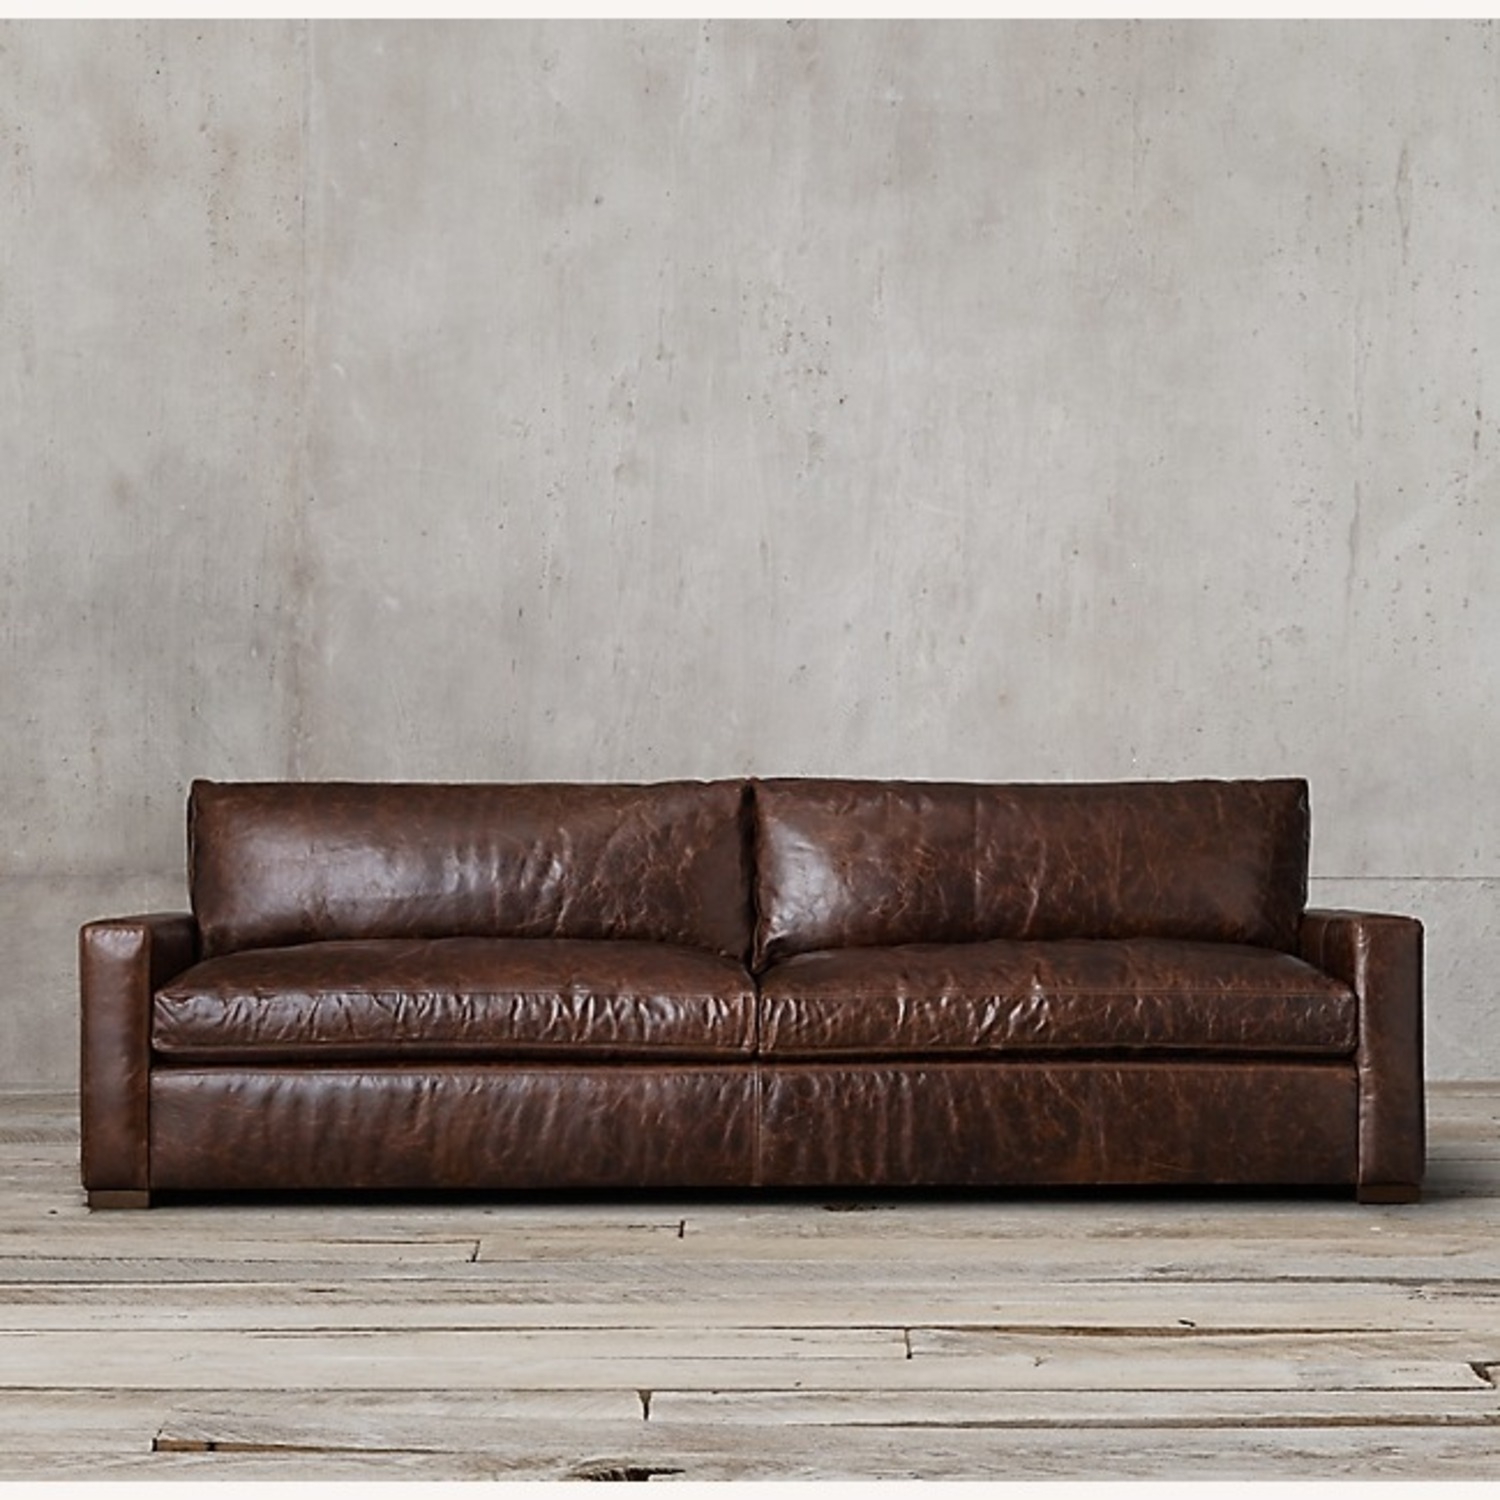 Restoration Hardware Maxwell Brown Leather Sofa + Ottoman - image-1